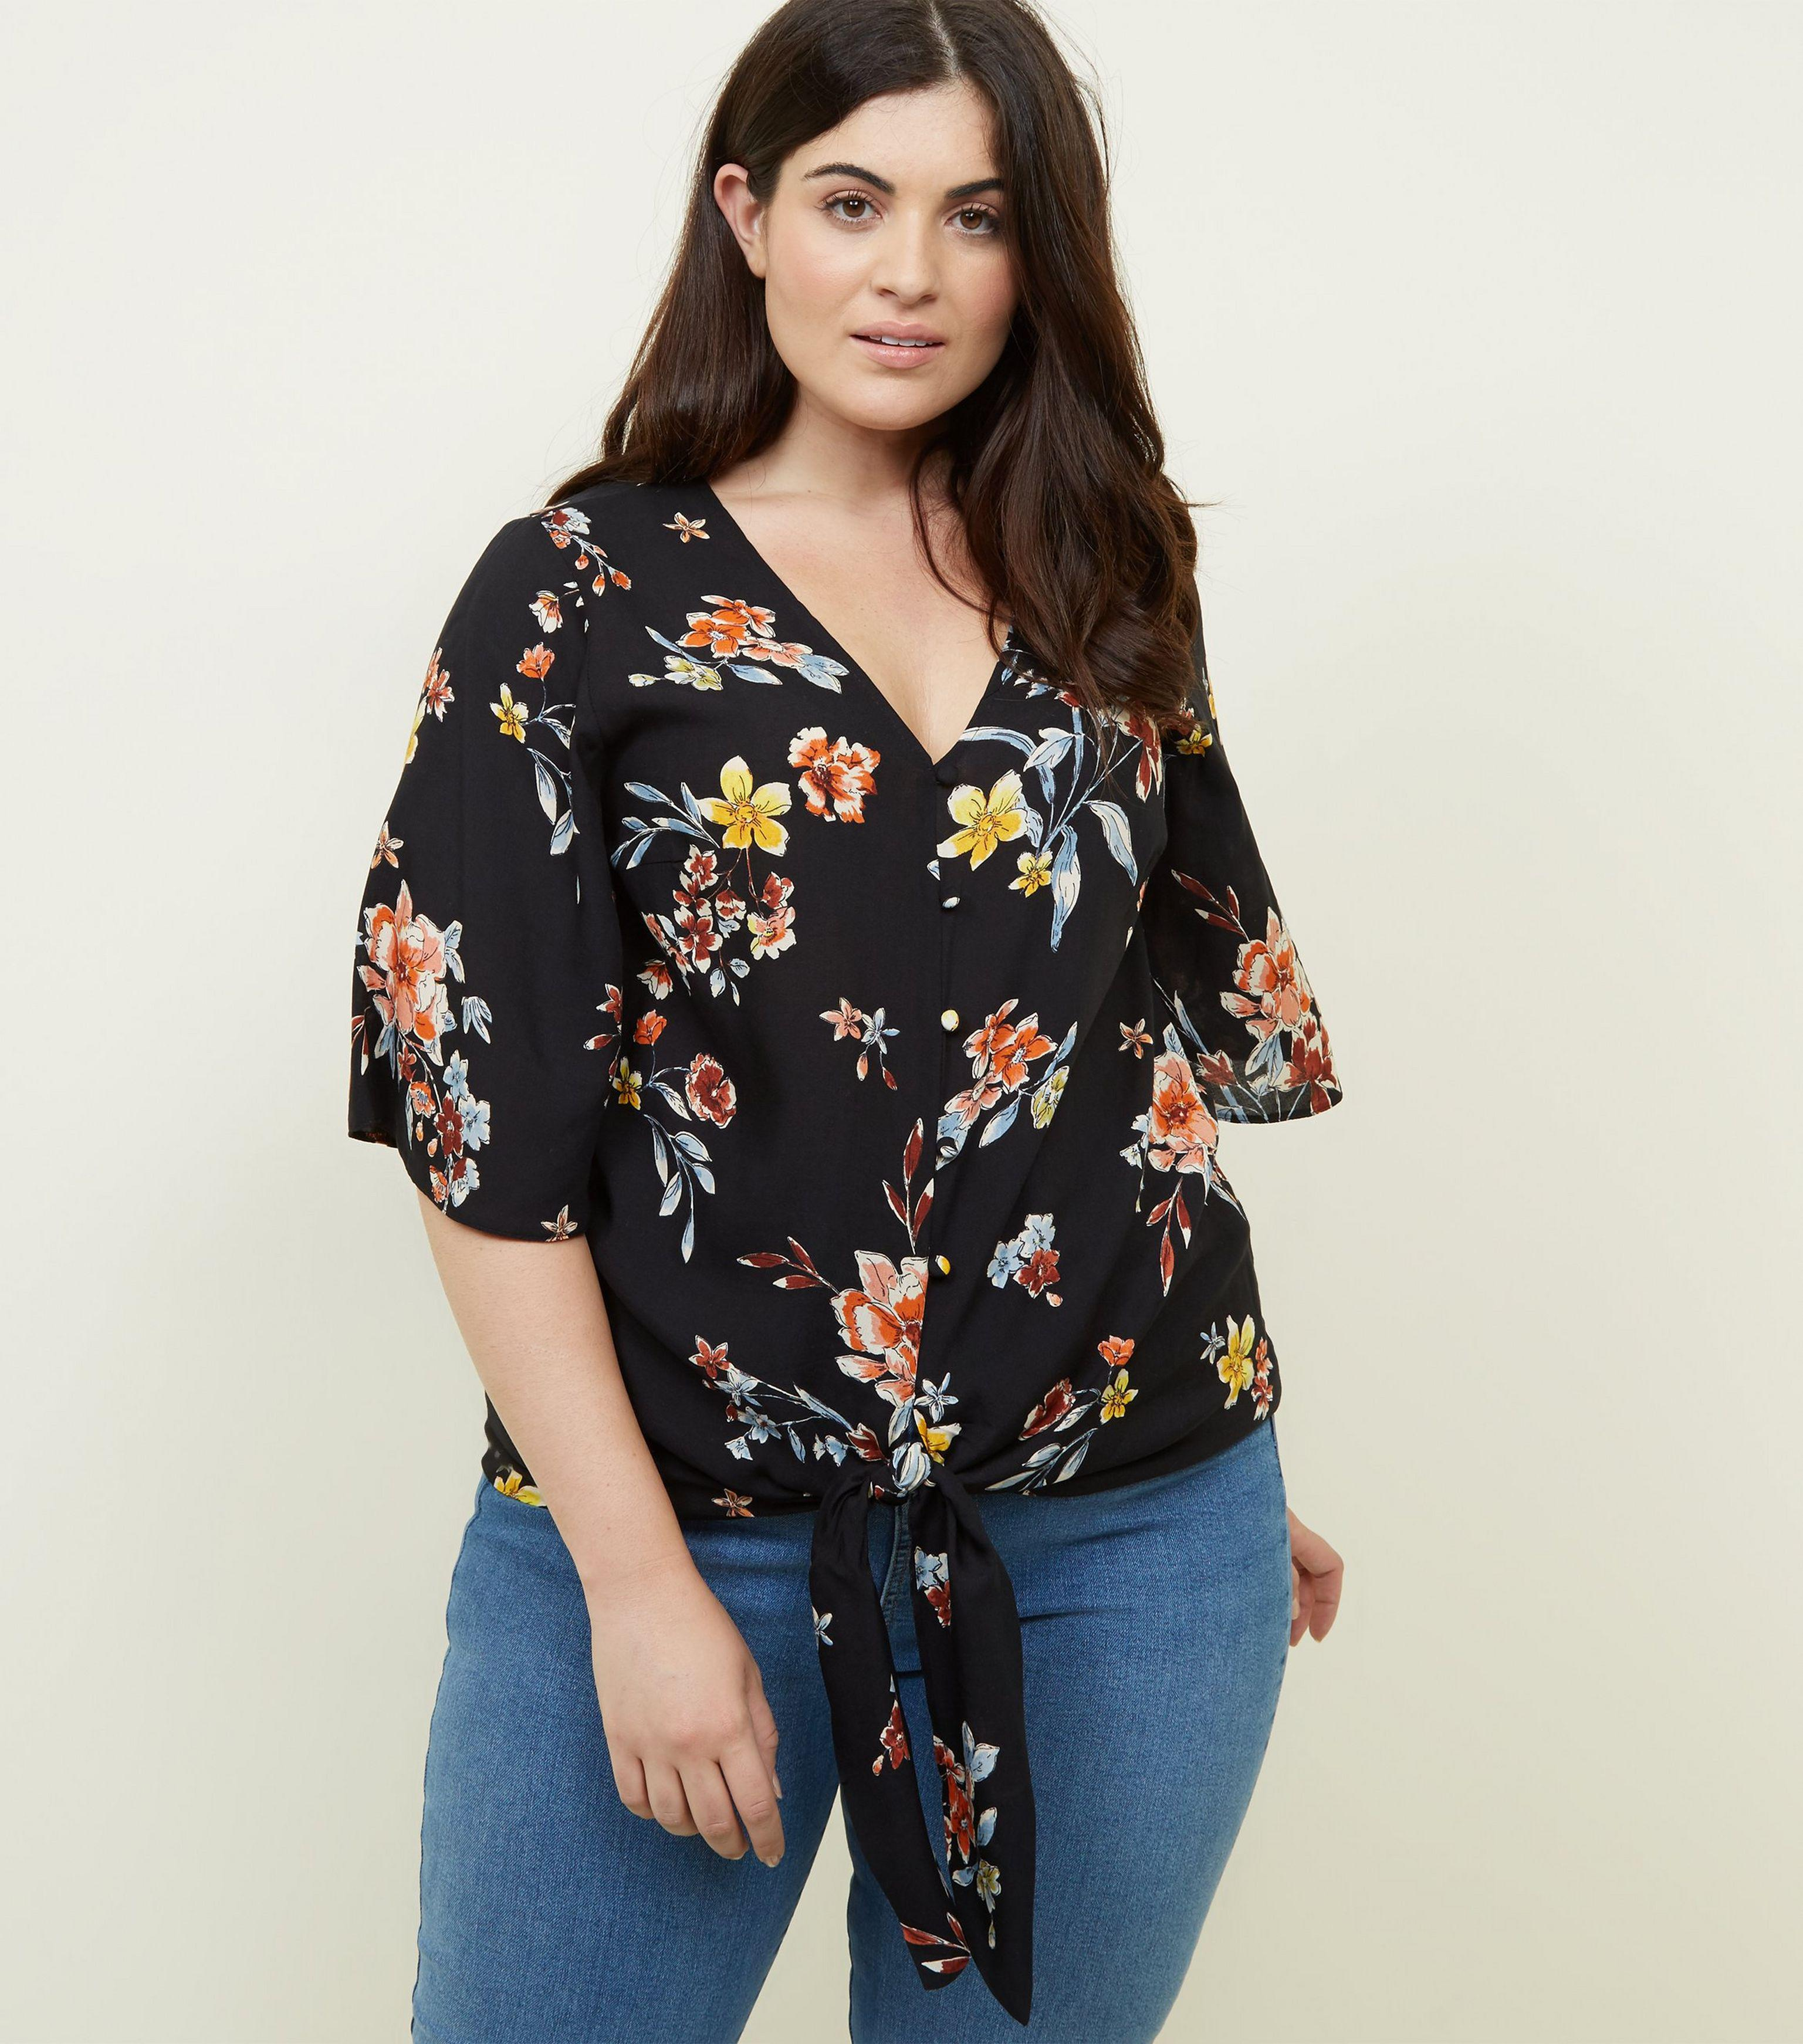 c520f4818245d New Look Curves Black Floral Button Tie Front Top in Black - Lyst